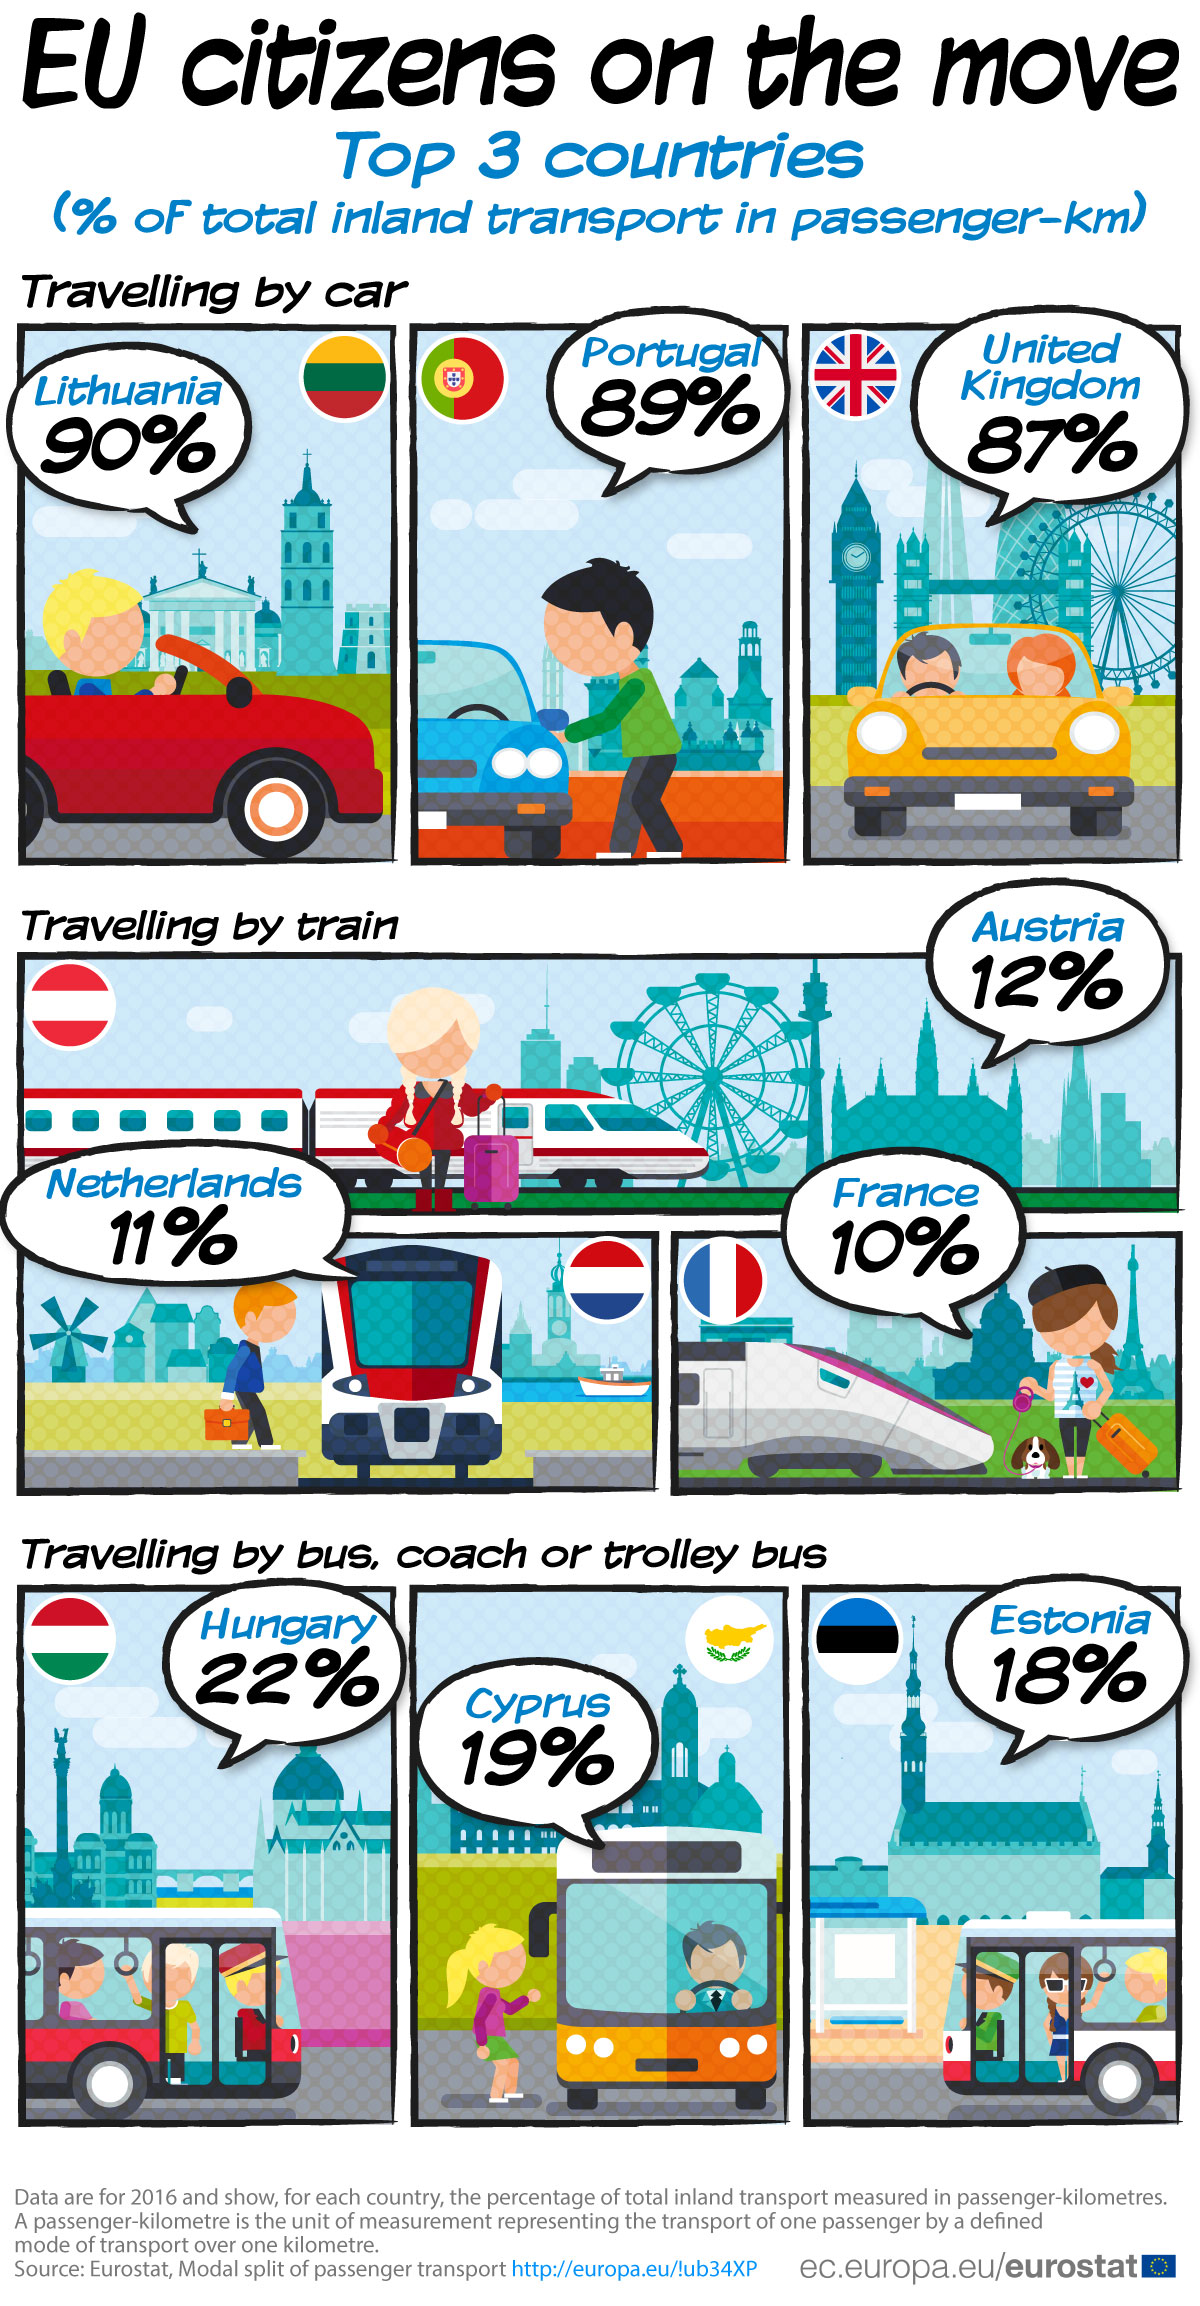 Infographic: Car, train, bus travel - top countries